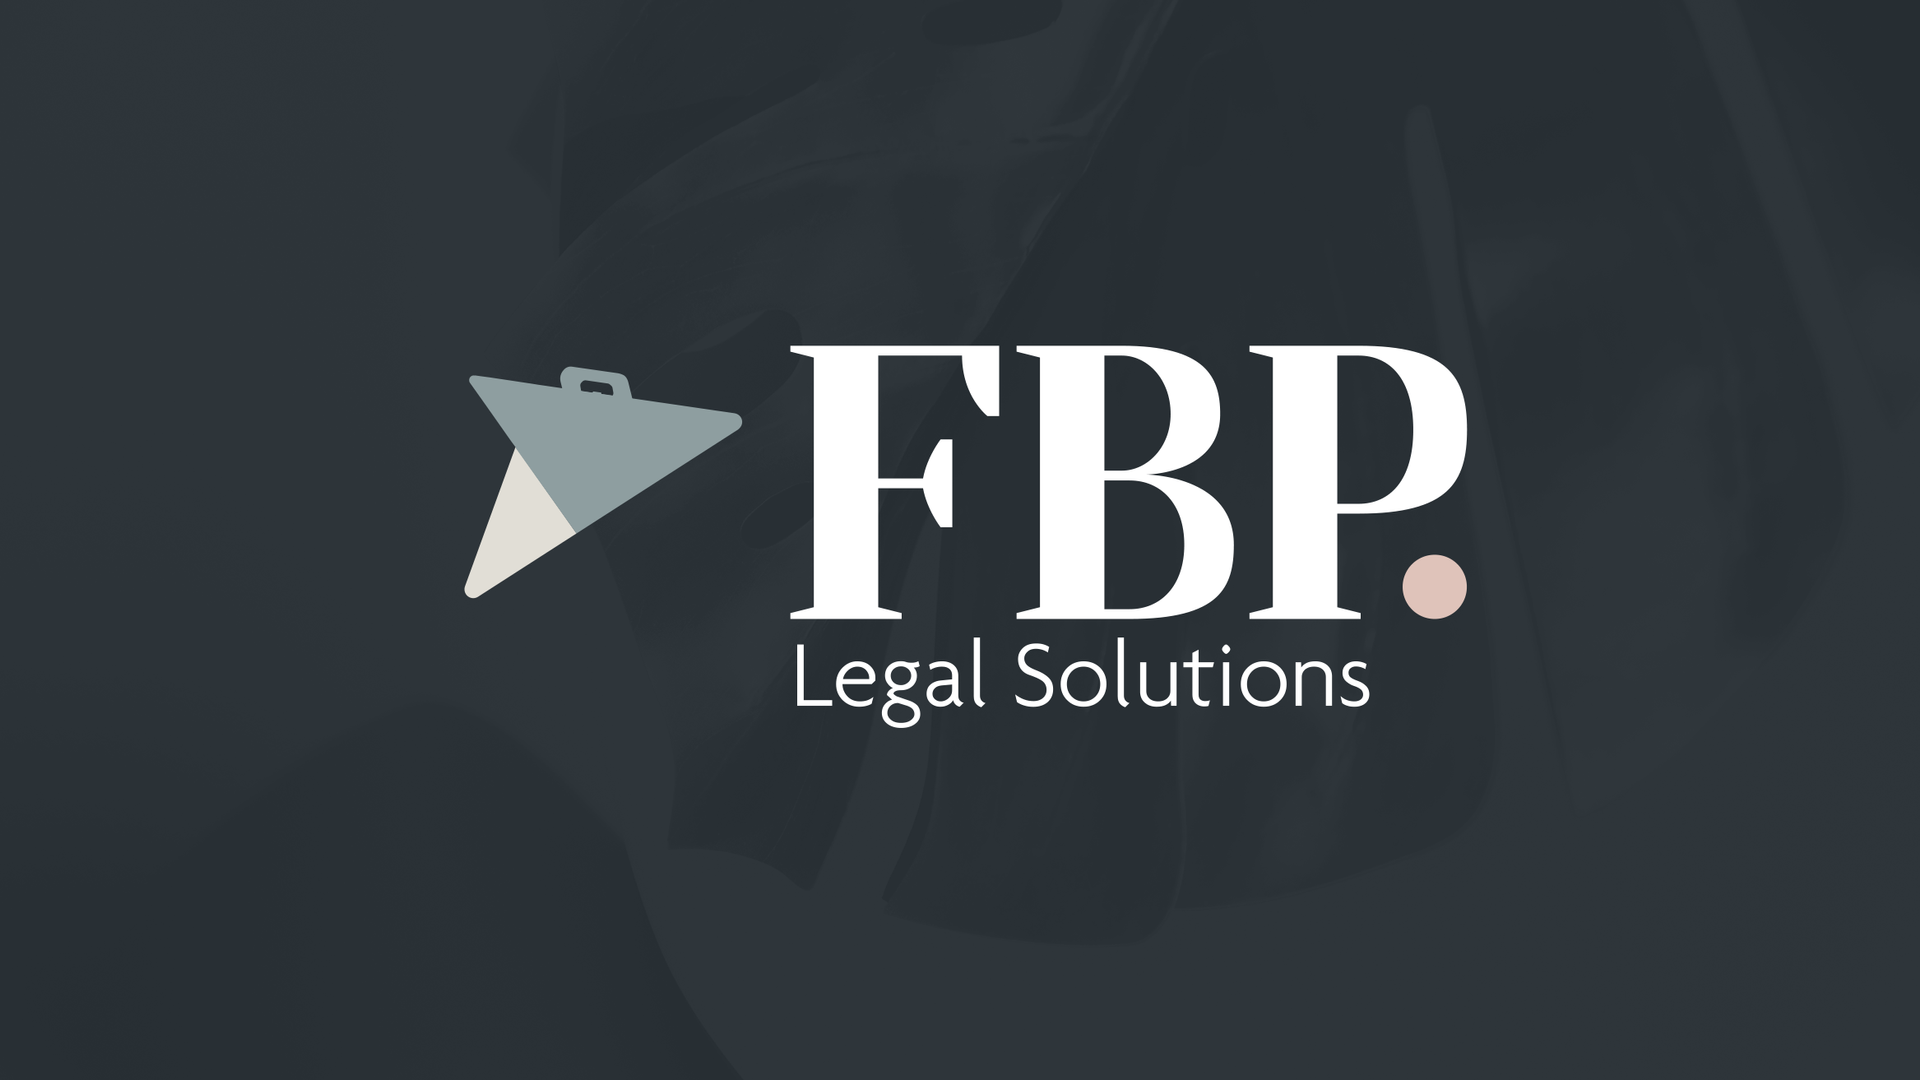 FBP Legal Solutions Brand Identity Design